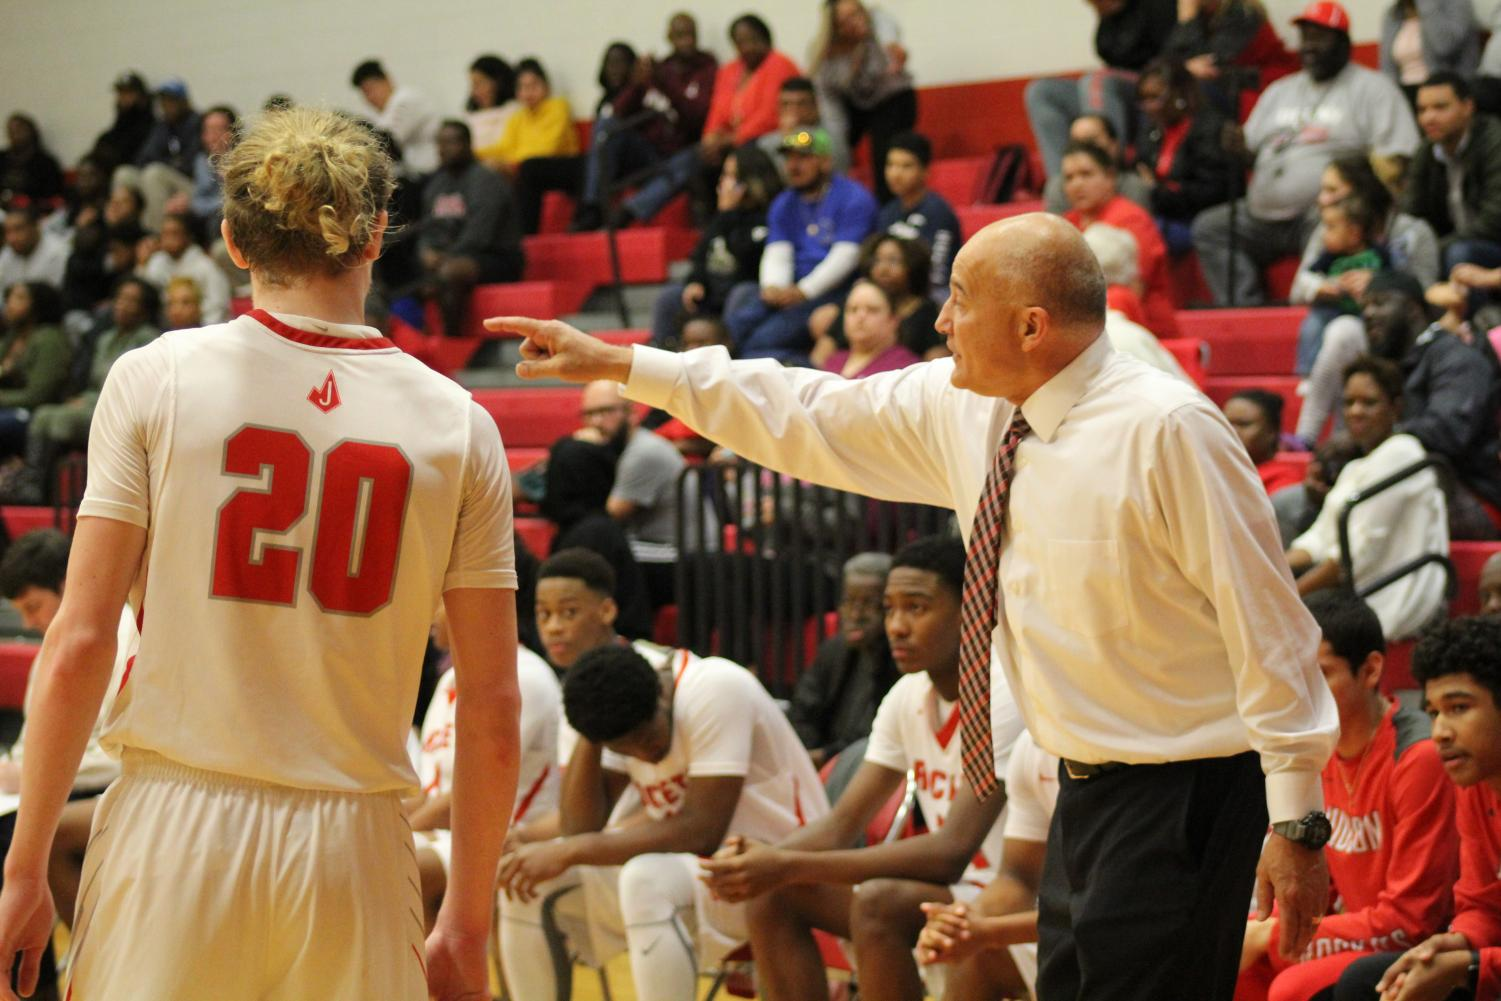 Head coach Victor Lopez coaches senior Thomas Baird. The men lost to Steele 69-76.